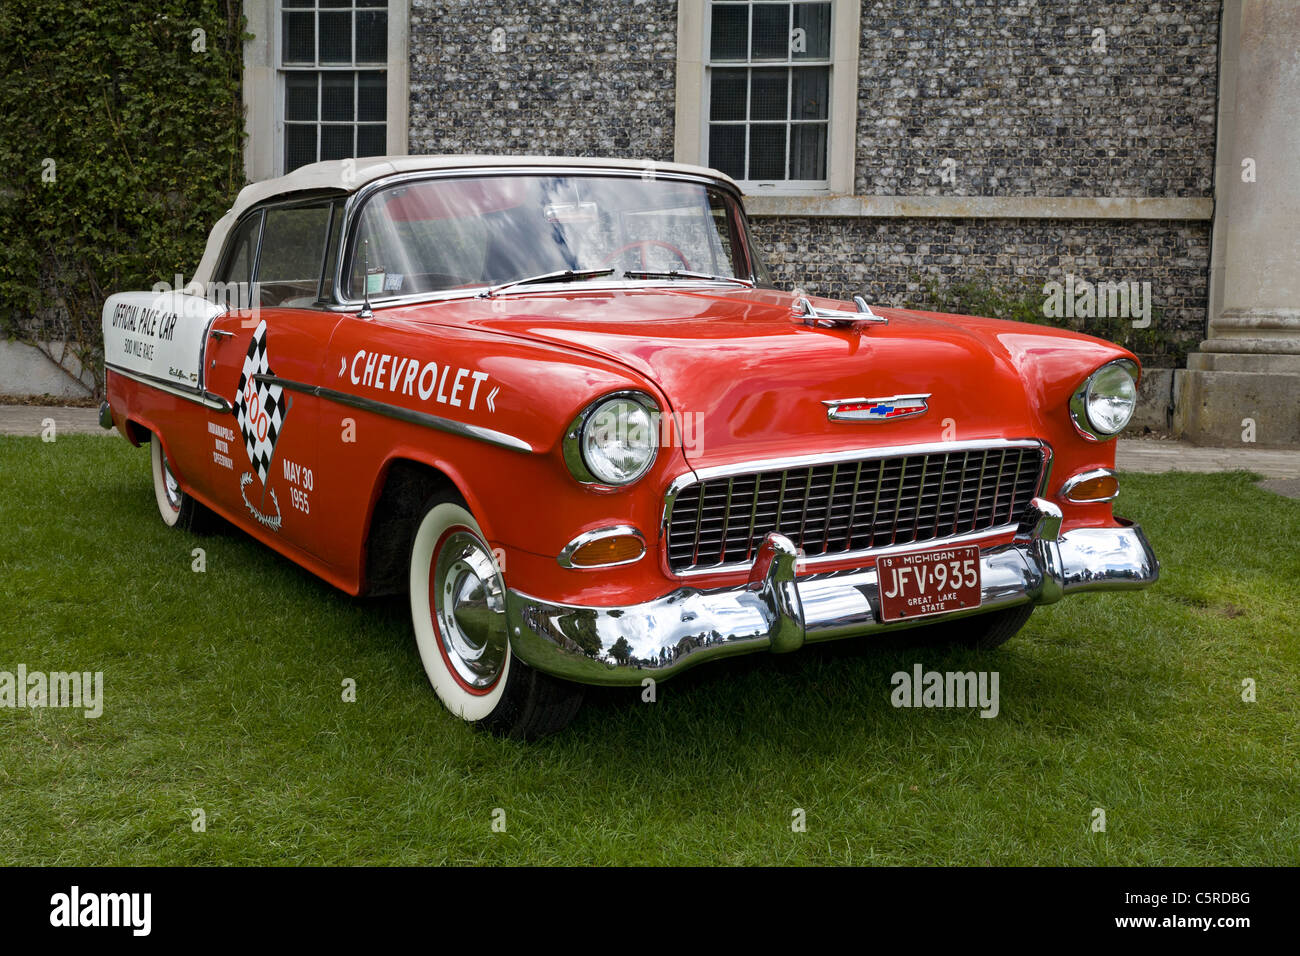 Wonderful 1955 Chevrolet Bel Air Convertible, One Time Pace Car At The Indianapolis  500. 2011